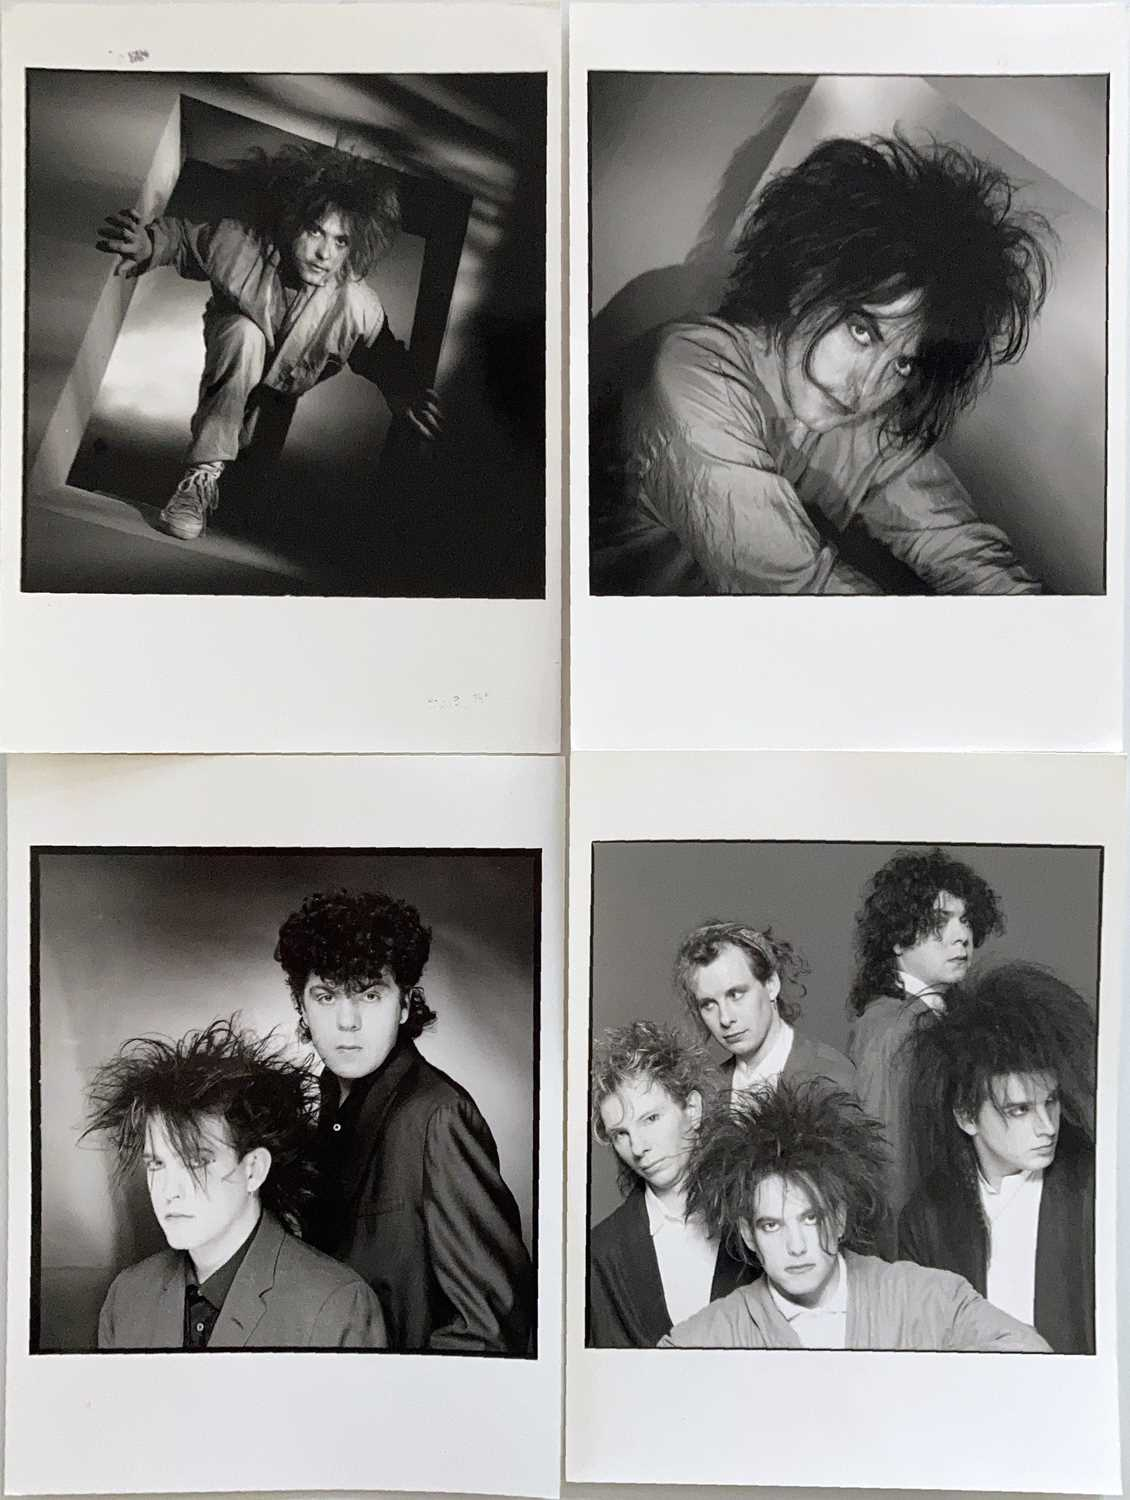 MUSIC PHOTOGRAPHS - THE CURE. - Image 3 of 5